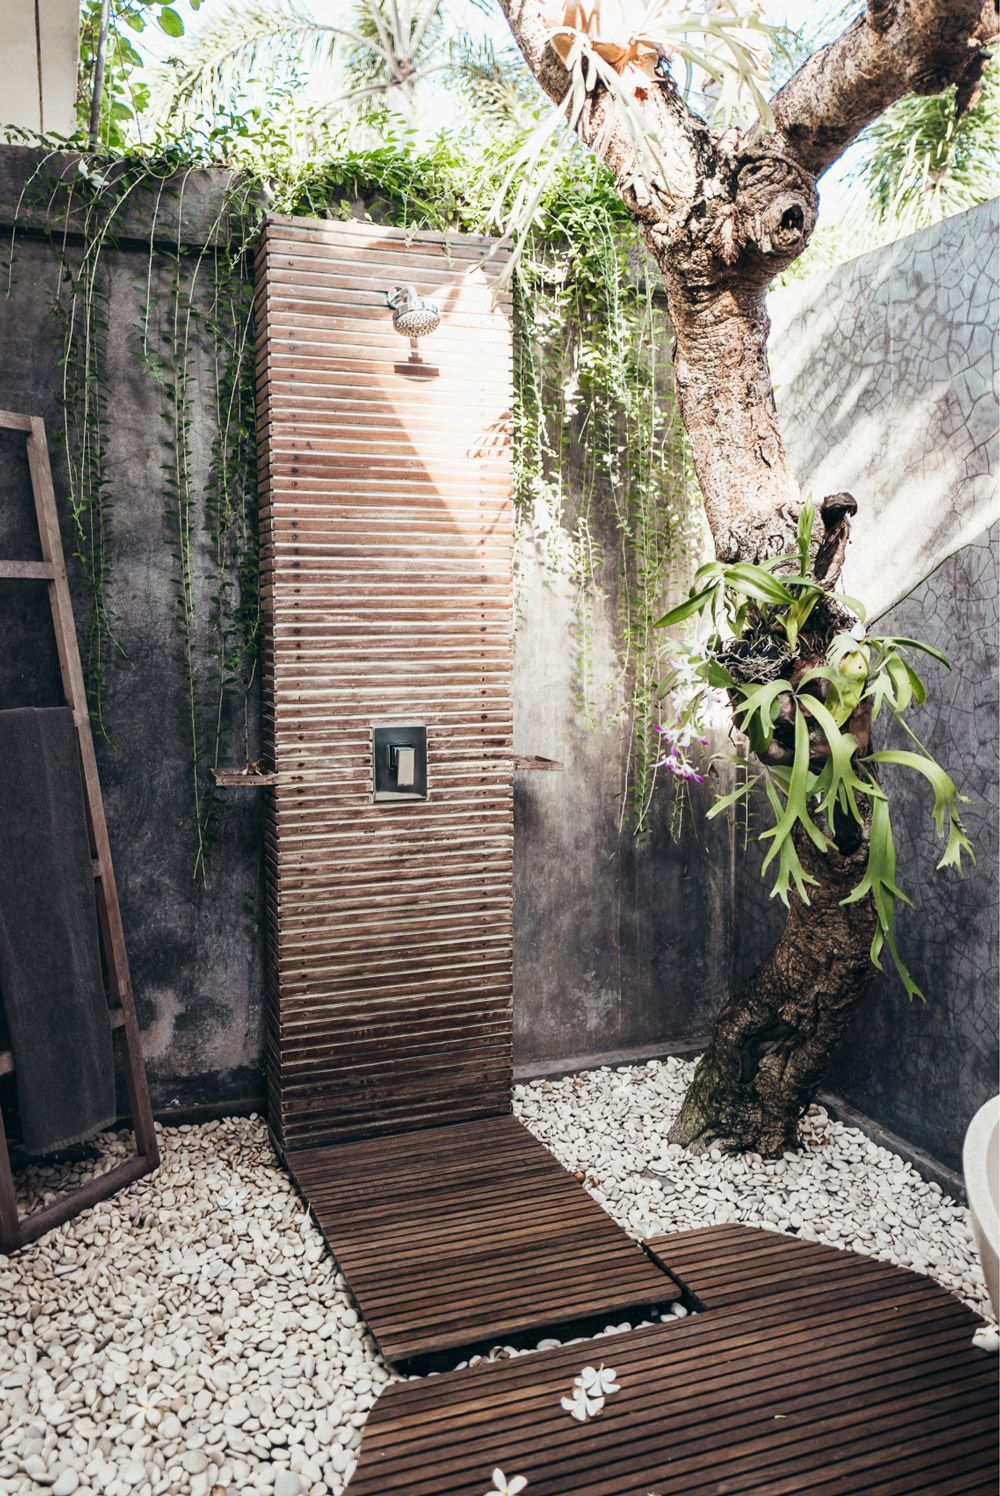 50 Stunning Outdoor Shower Spaces That Take You To Urban Paradise #gardenoutdoors